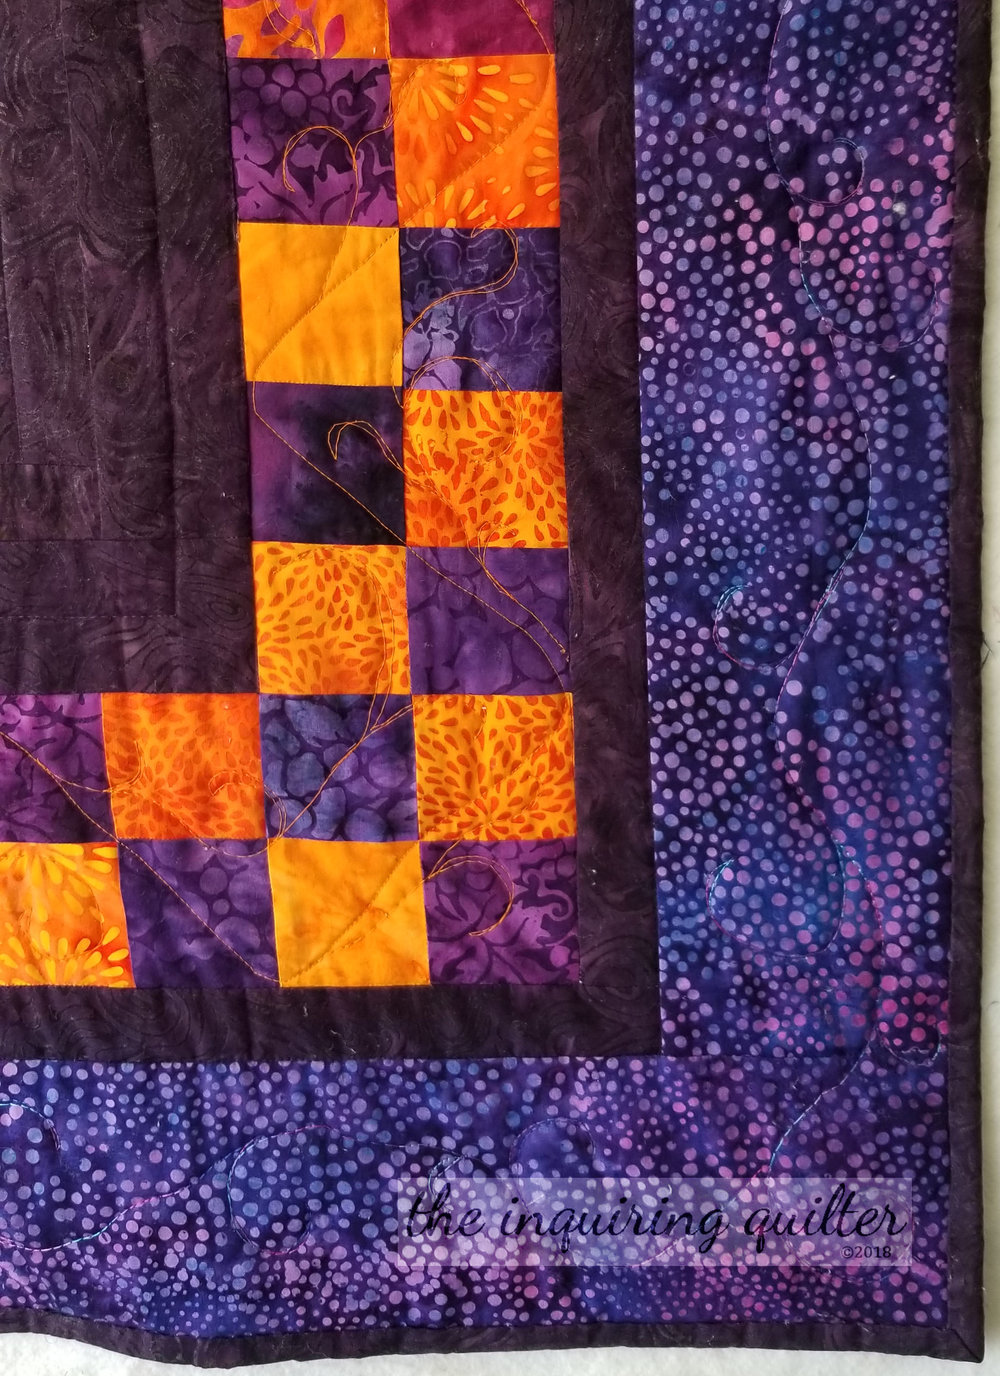 Wicked Envy quilted 6.jpg